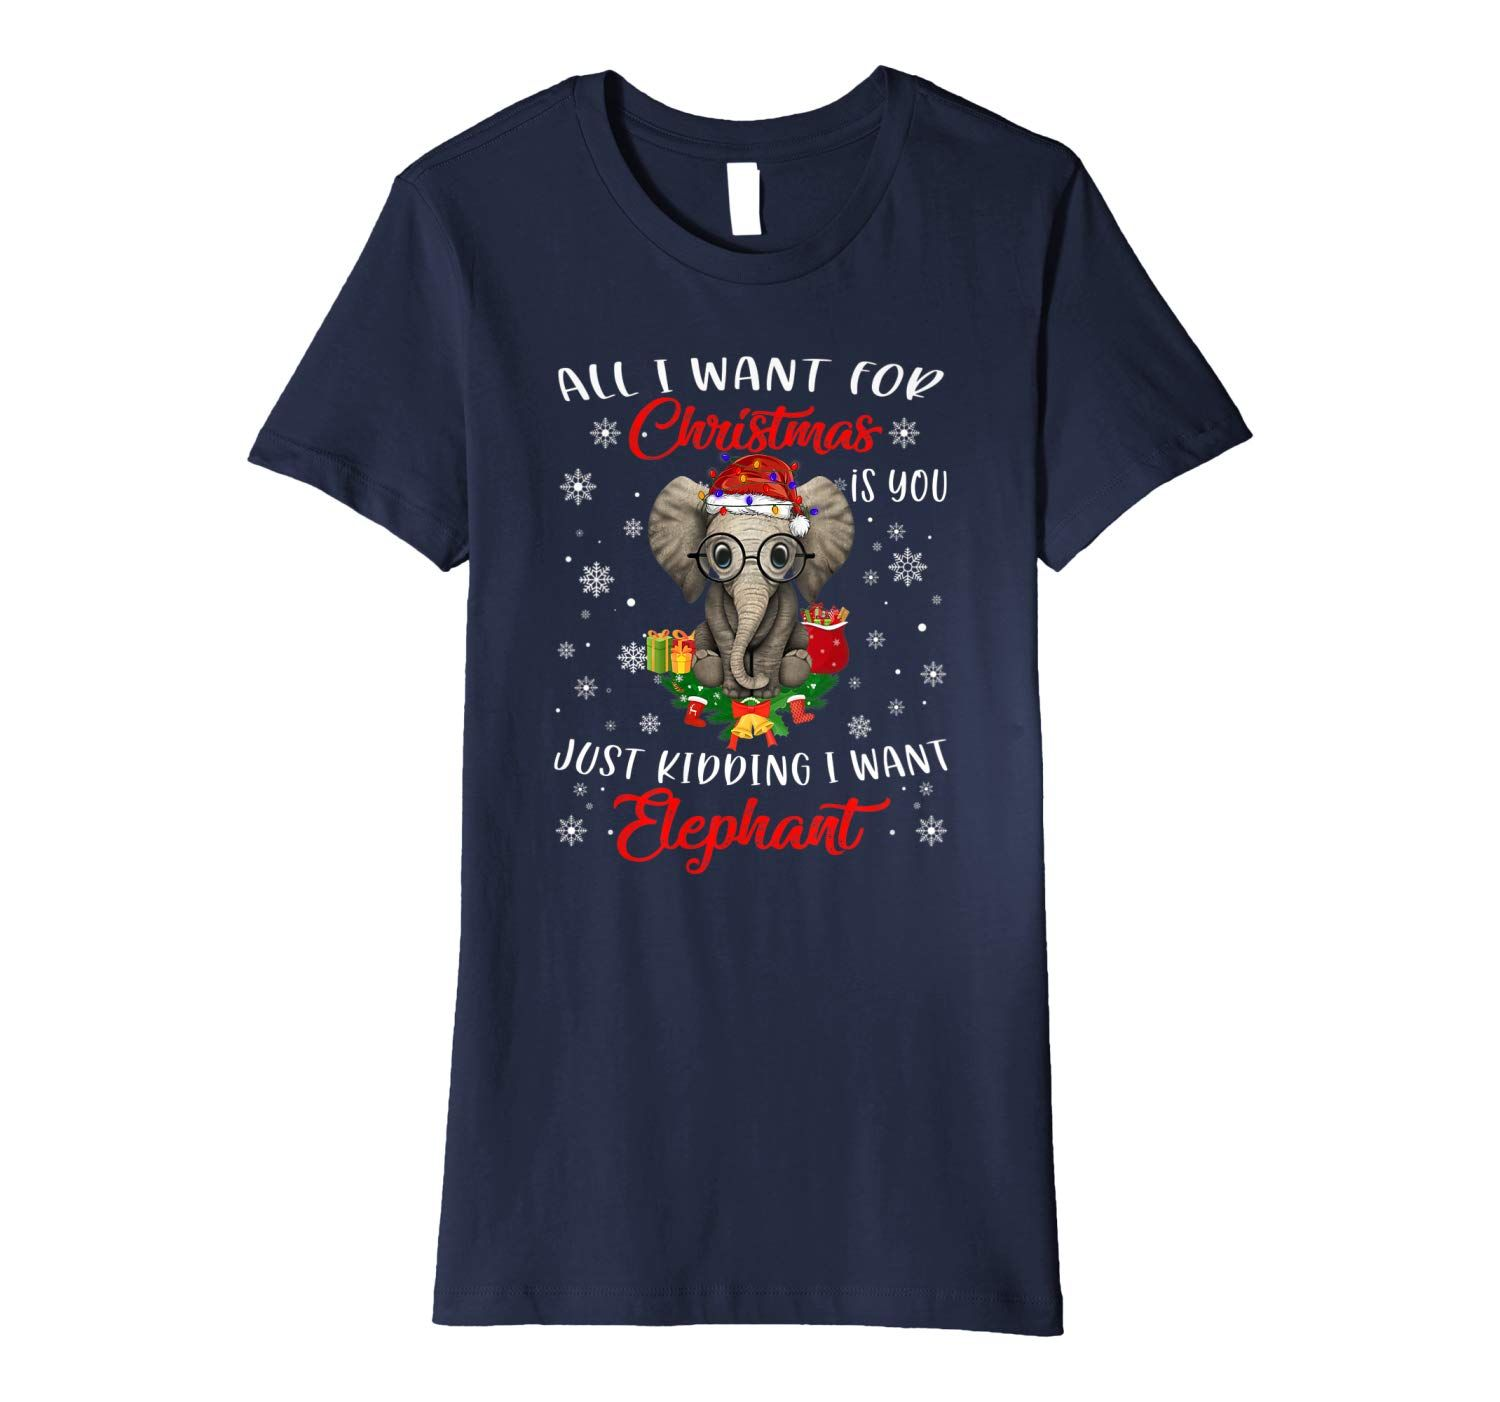 Just Kidding I Want Elephant For Christmas Funny Gifts Premium T-Shirt